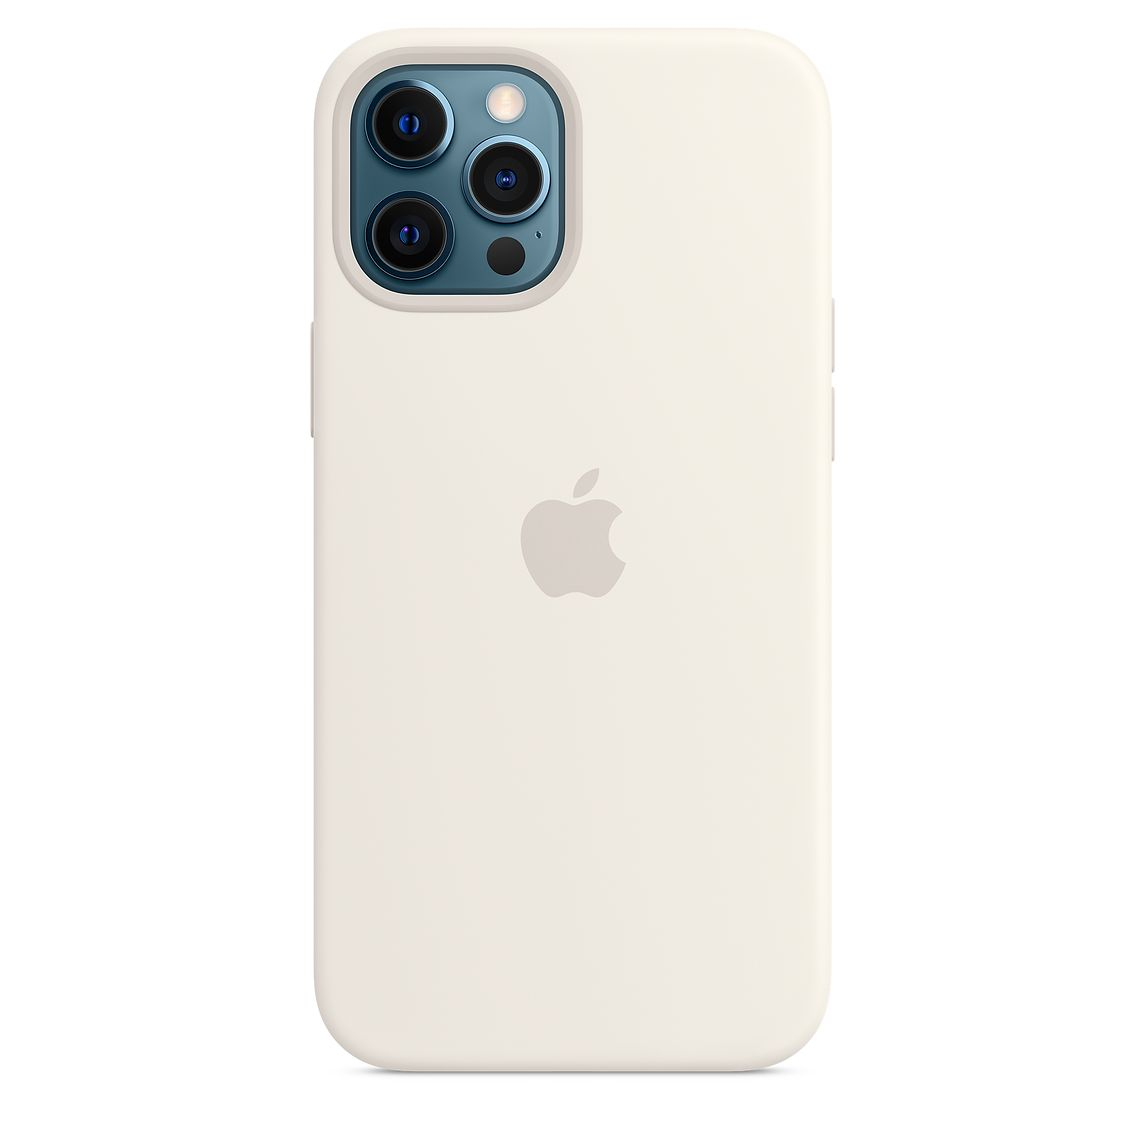 - iPhone 12 Pro Max Silicone Case with MagSafe / Blanco 4